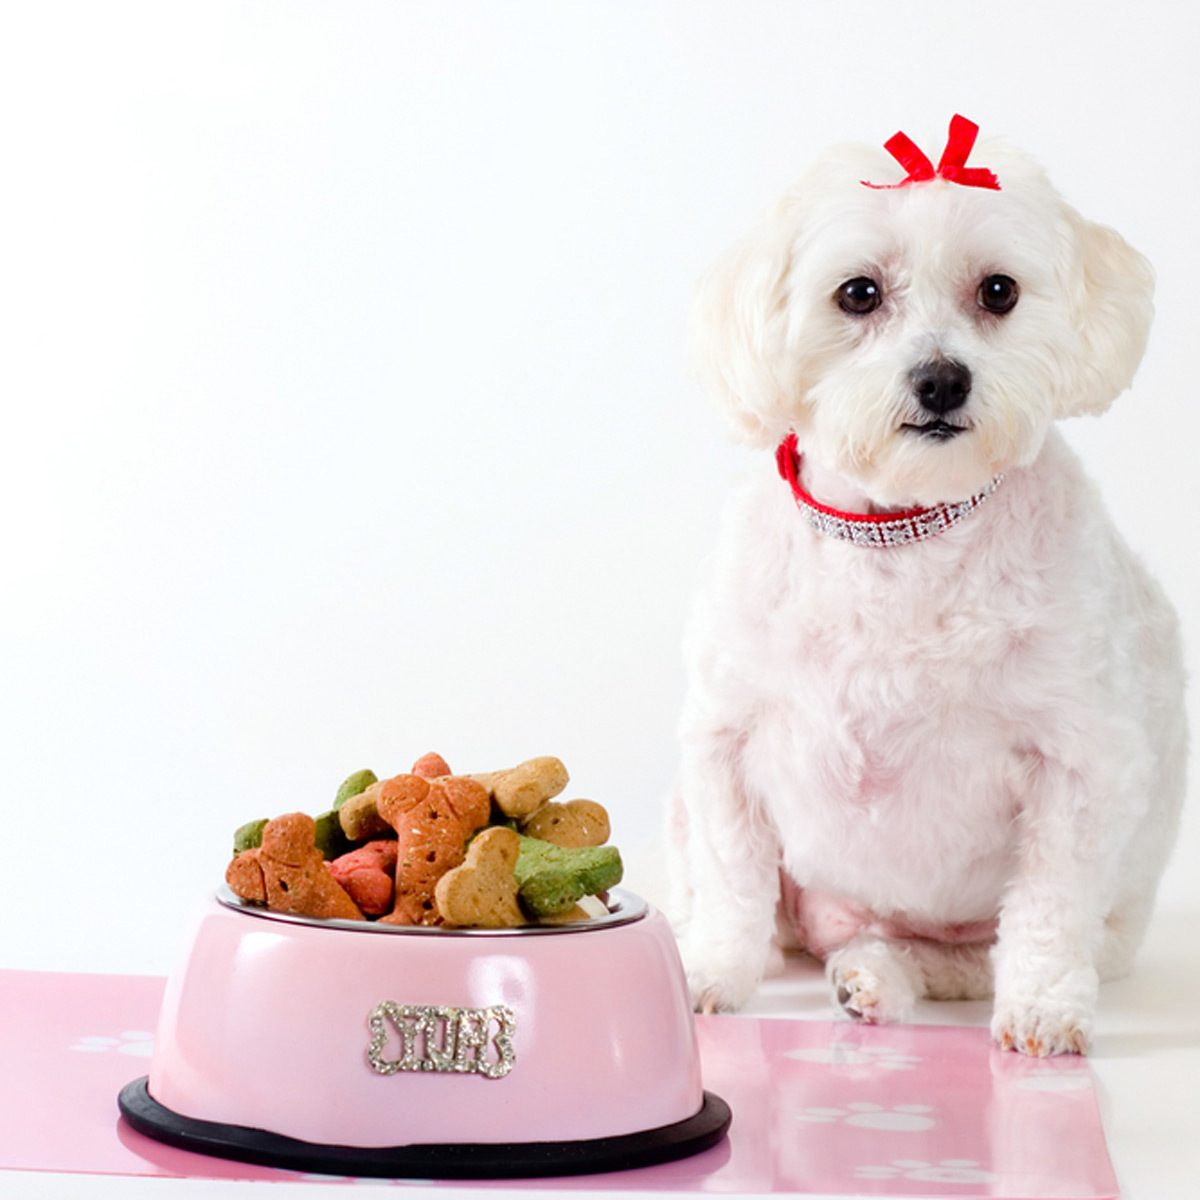 dog pet placemat food